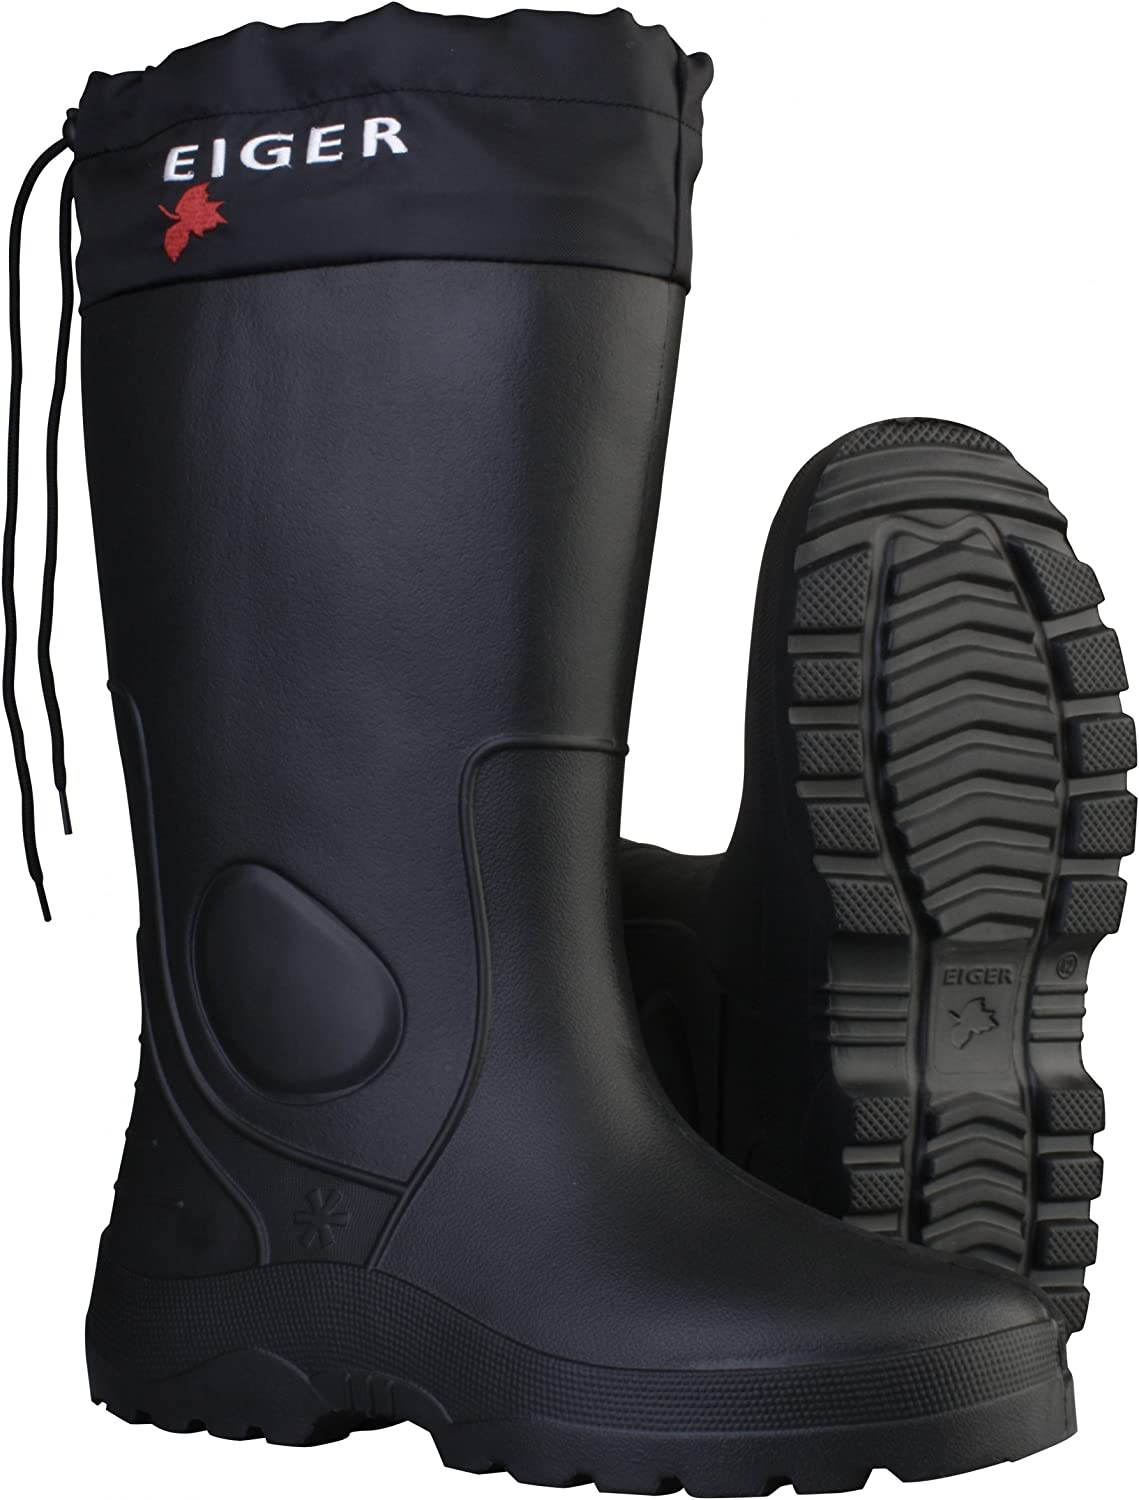 bottes homme eiger lapland thermo boots